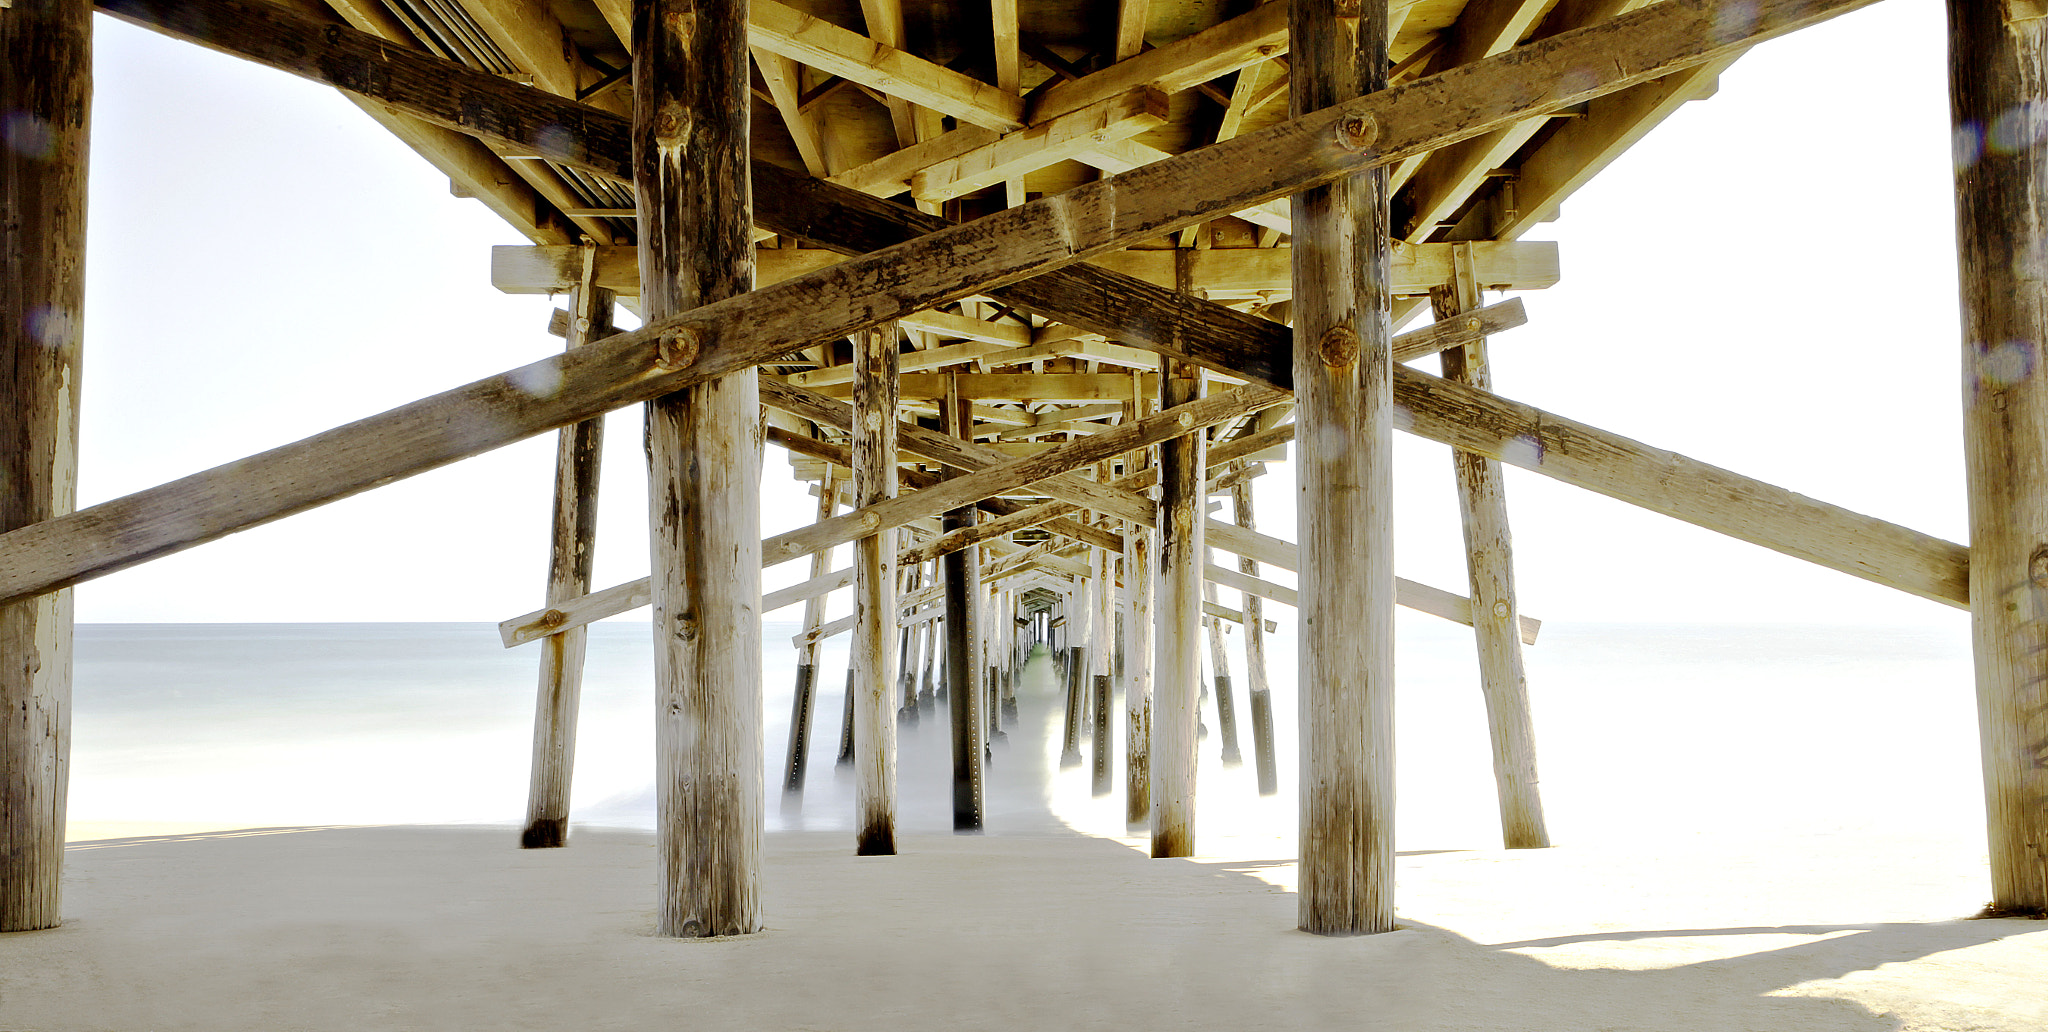 Photograph Under the Pier by Justin Swindle on 500px